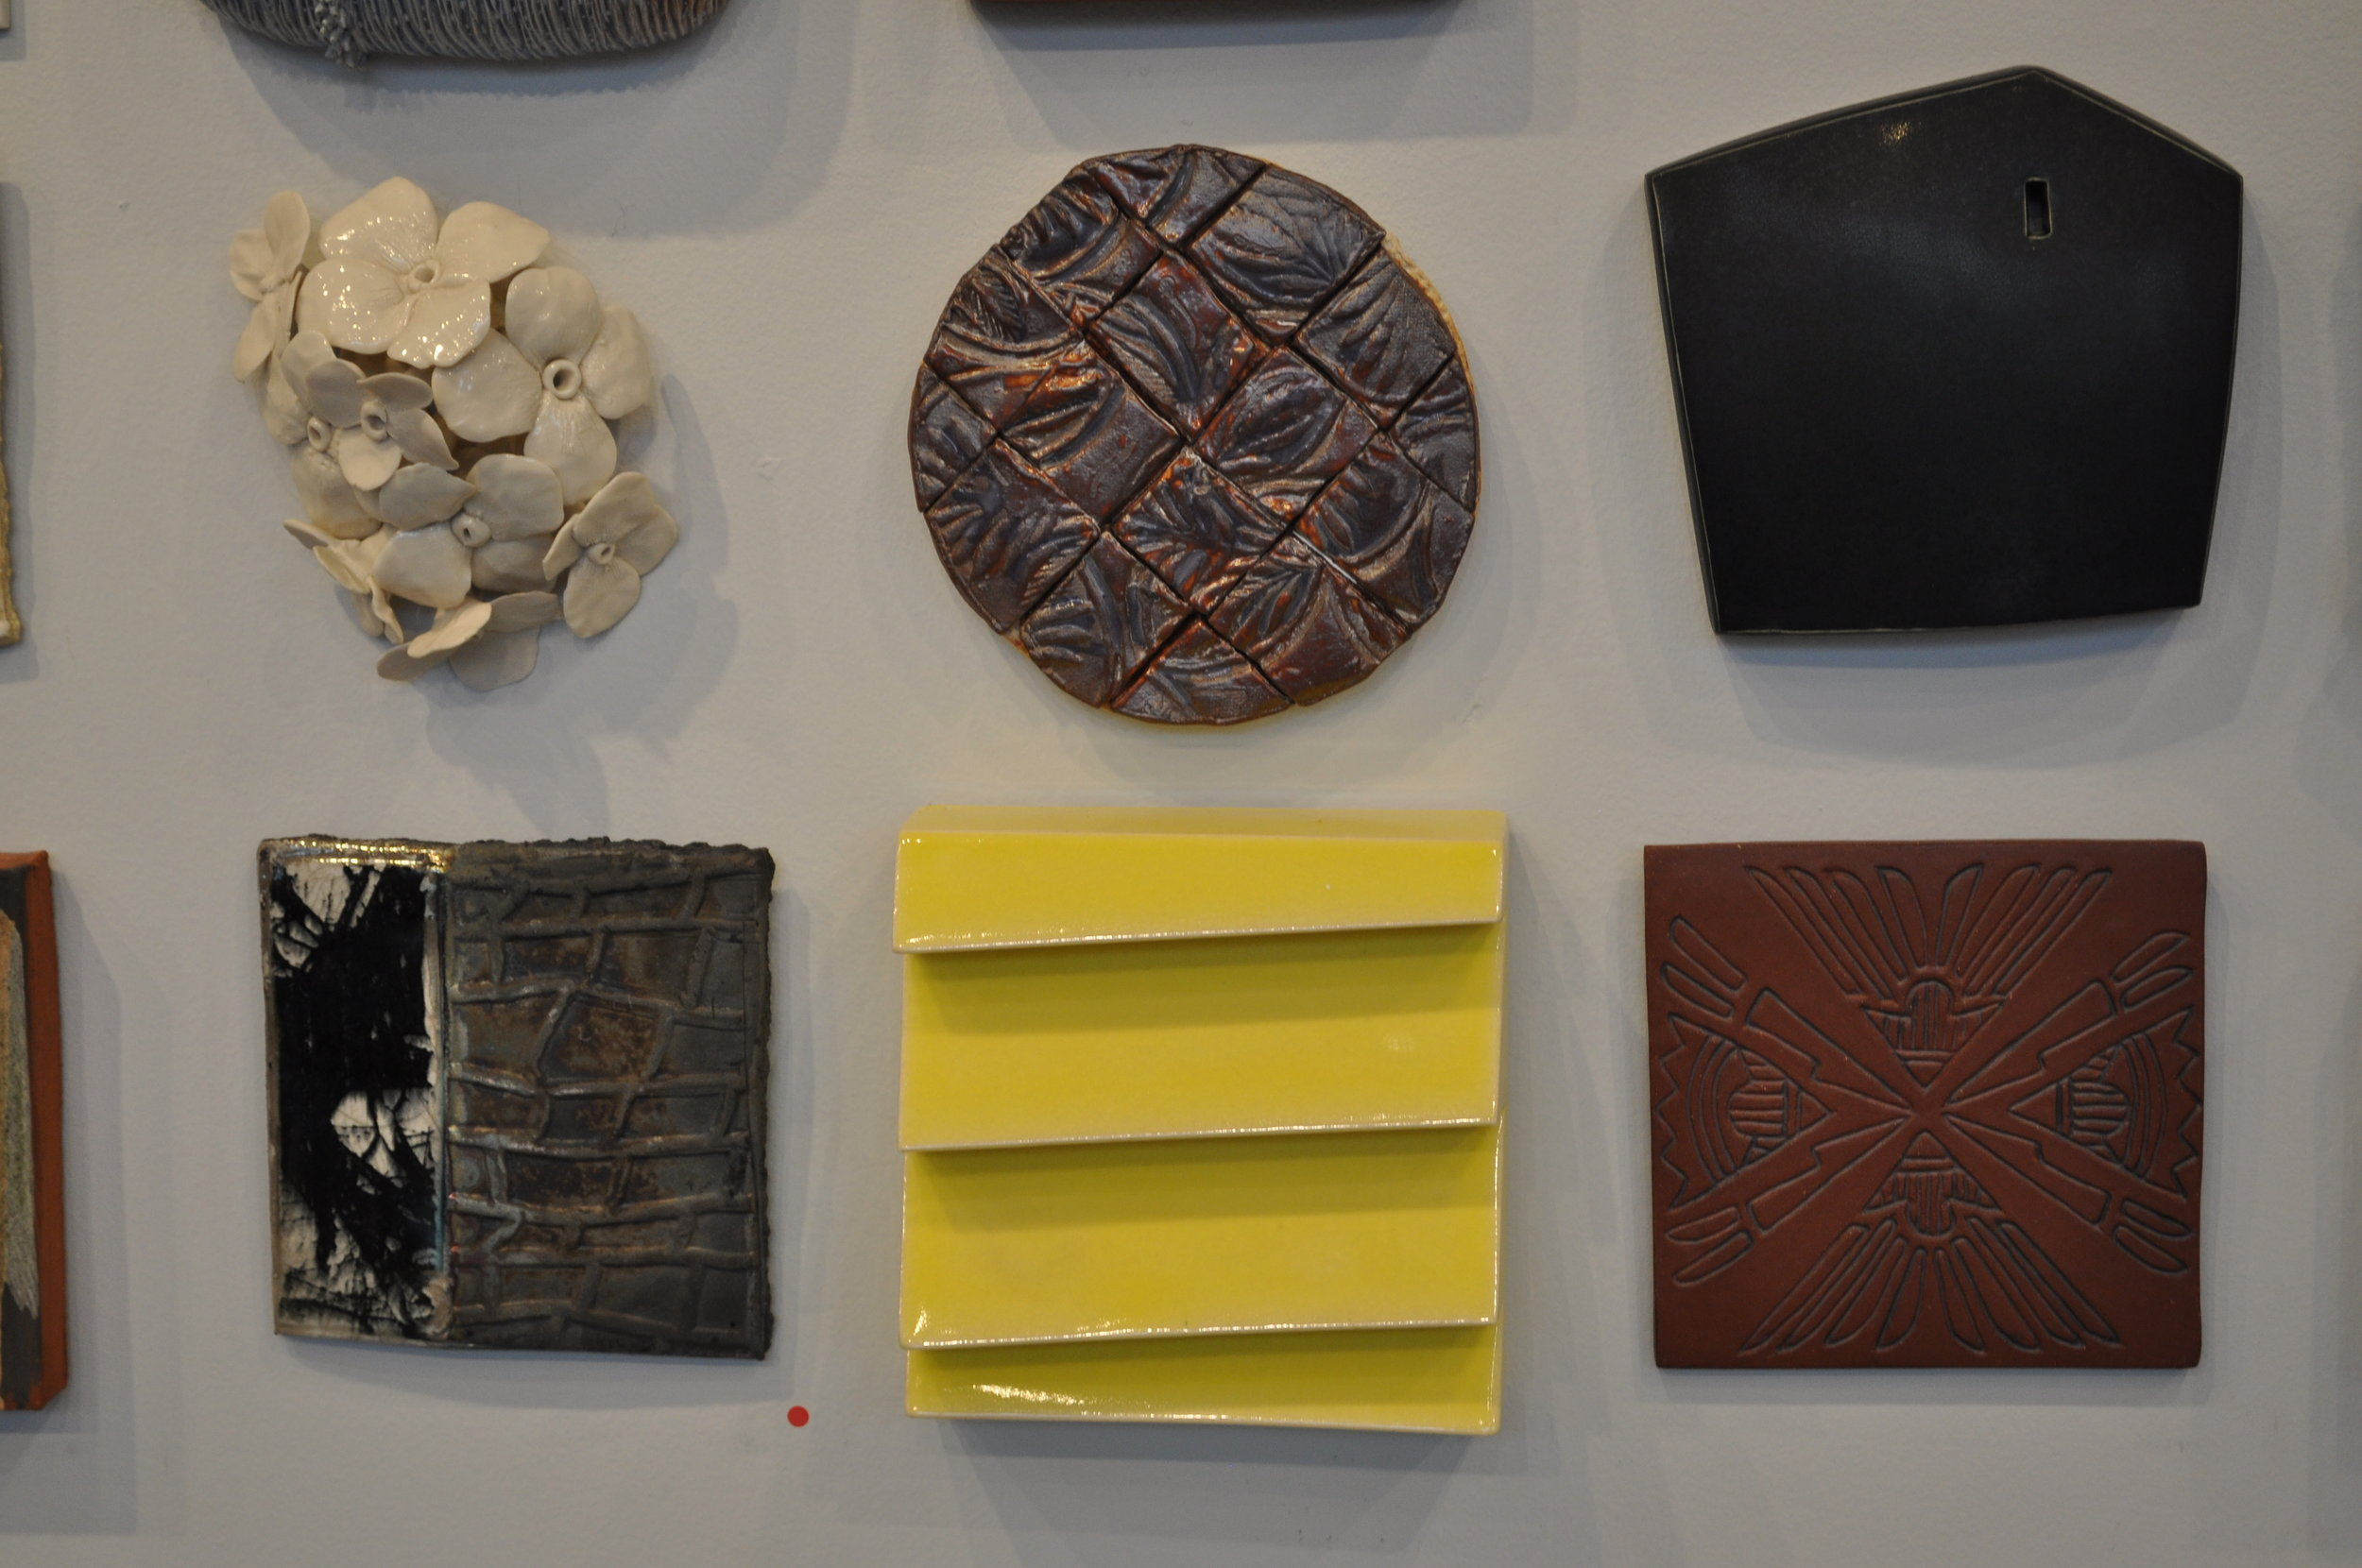 1.  Christina Pitsch,  Pansy 2  $325  2.  Myra Bowie,  Squares in the circle    $40  3.  Jill Oberman,  Home $175  4. Helayne Friedland,  Branches tile 2  (SOLD) 5.  Jim Lawton,  Yellow Lapstrake Tile 2  (SOLD) 6.  Carol Long,  Arrows Pointing- Fighting Stops  $50